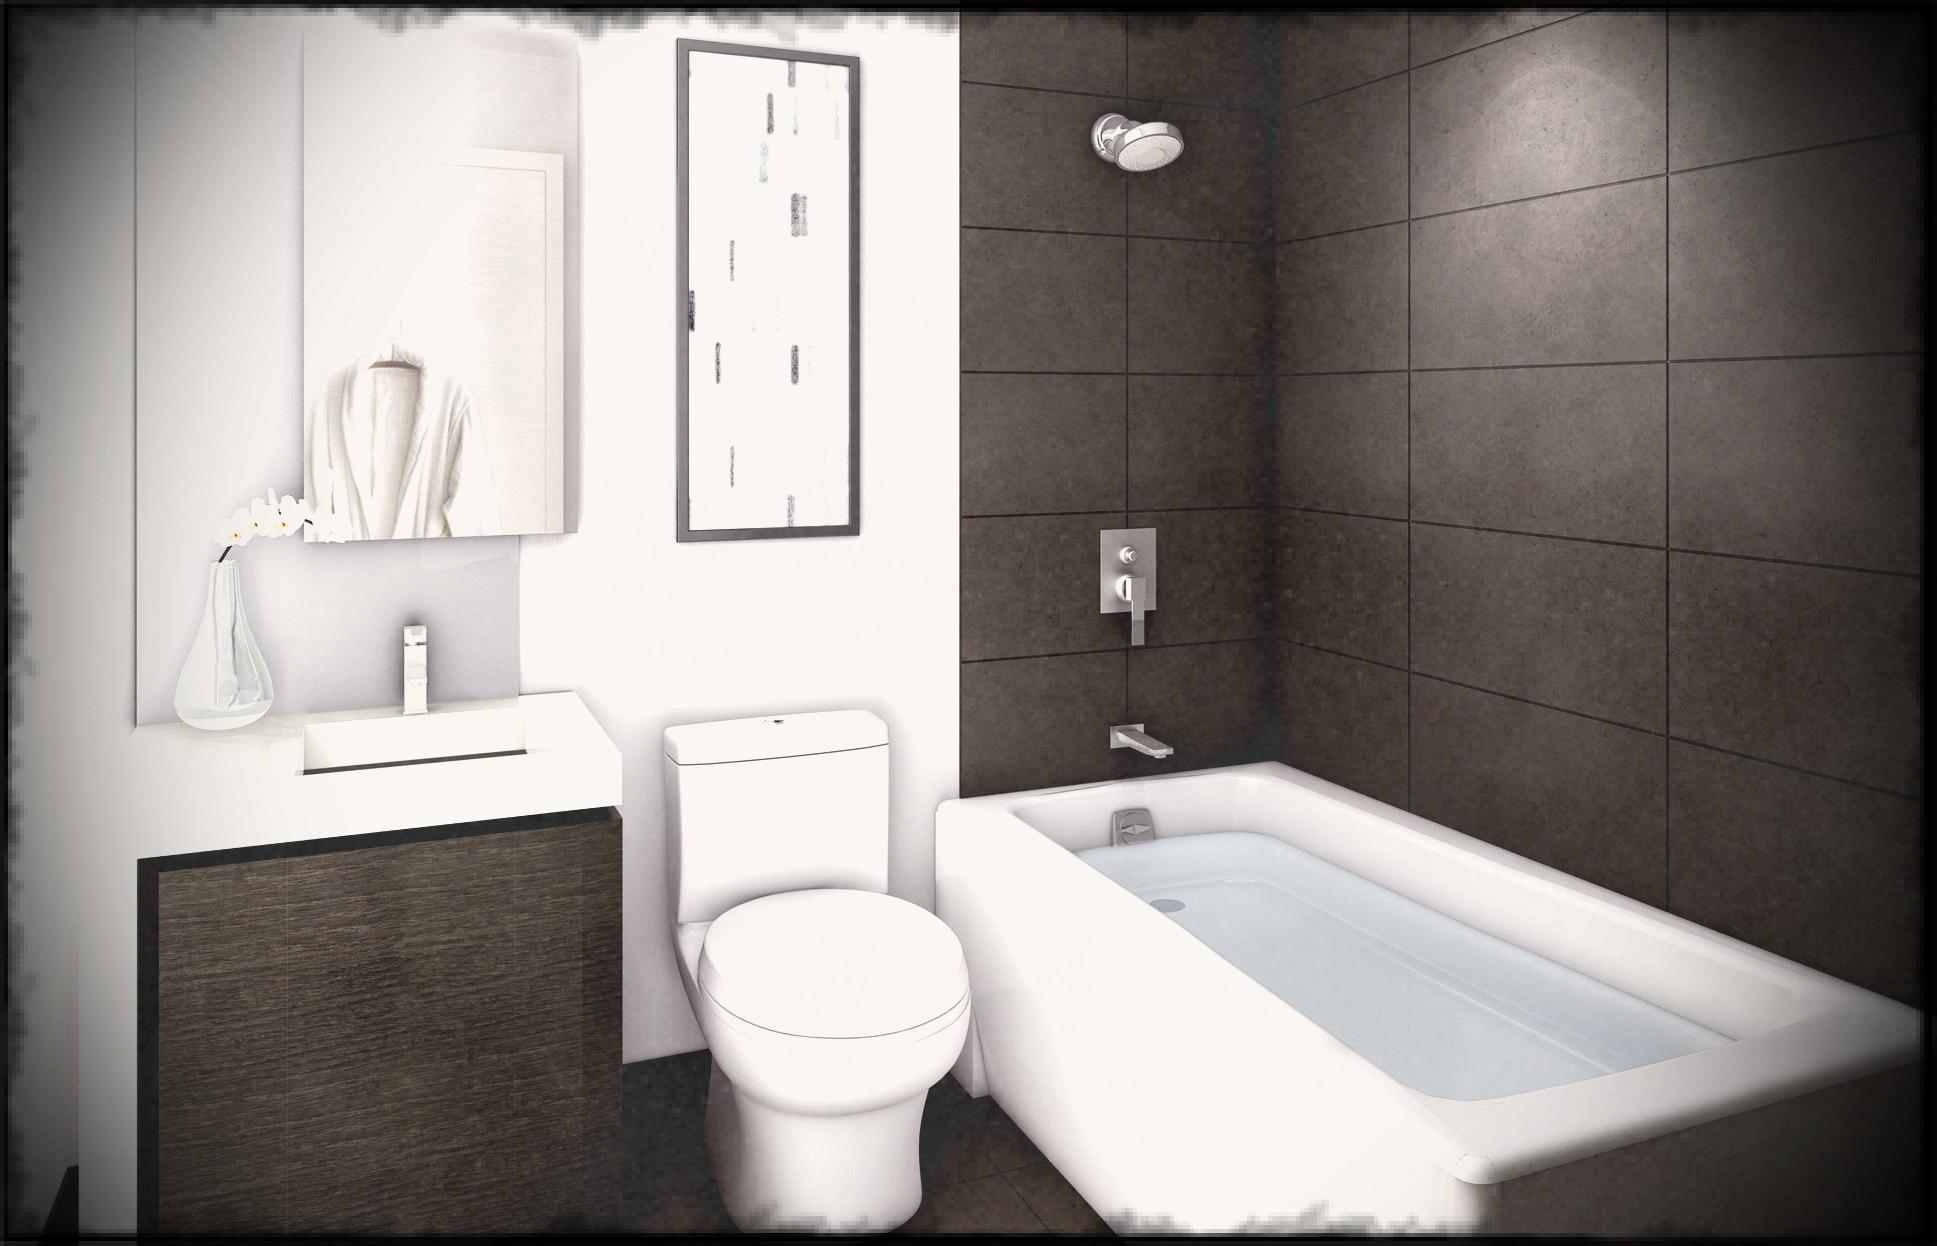 Minosa Bathroom Rog 13 Modern Design Espo Idea With White Bathtup Also Toilet